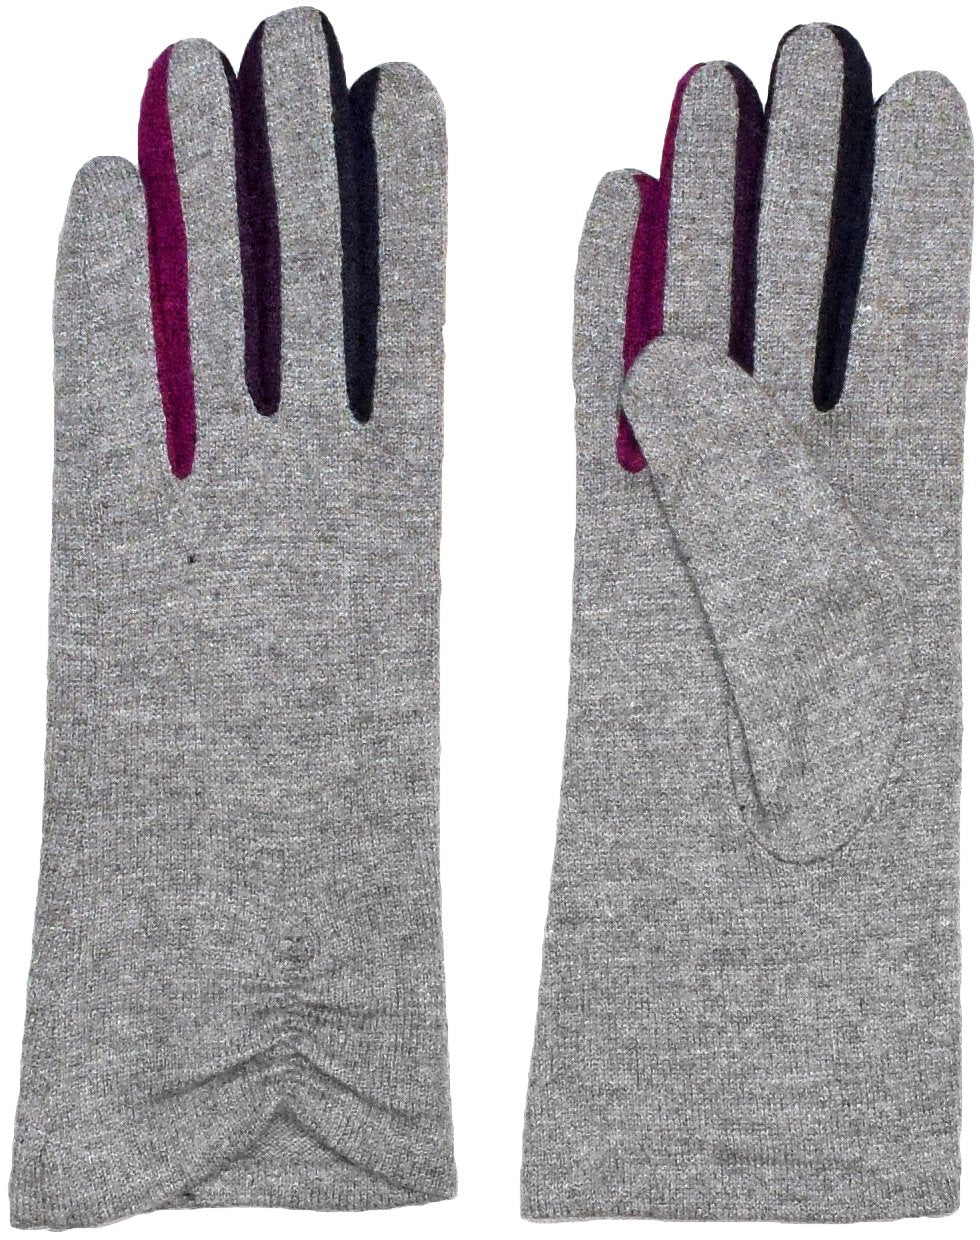 Wool Blend Knit Tech Glove with Multicolored Insets